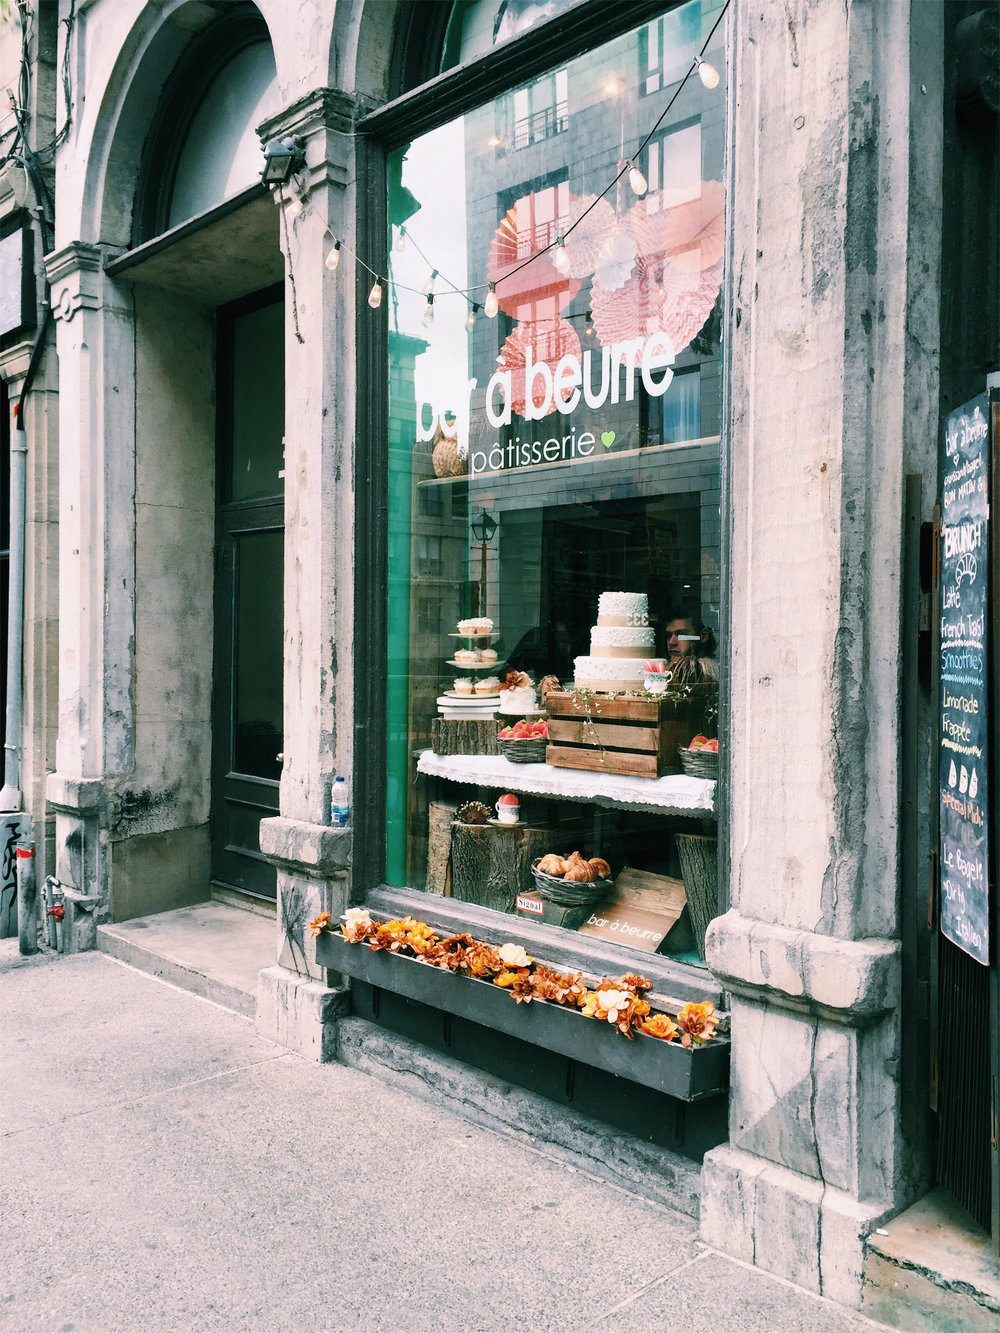 Bar a Beurre Patisserie in Old Montreal via Lora Weaver Mysteries by Katy Leen